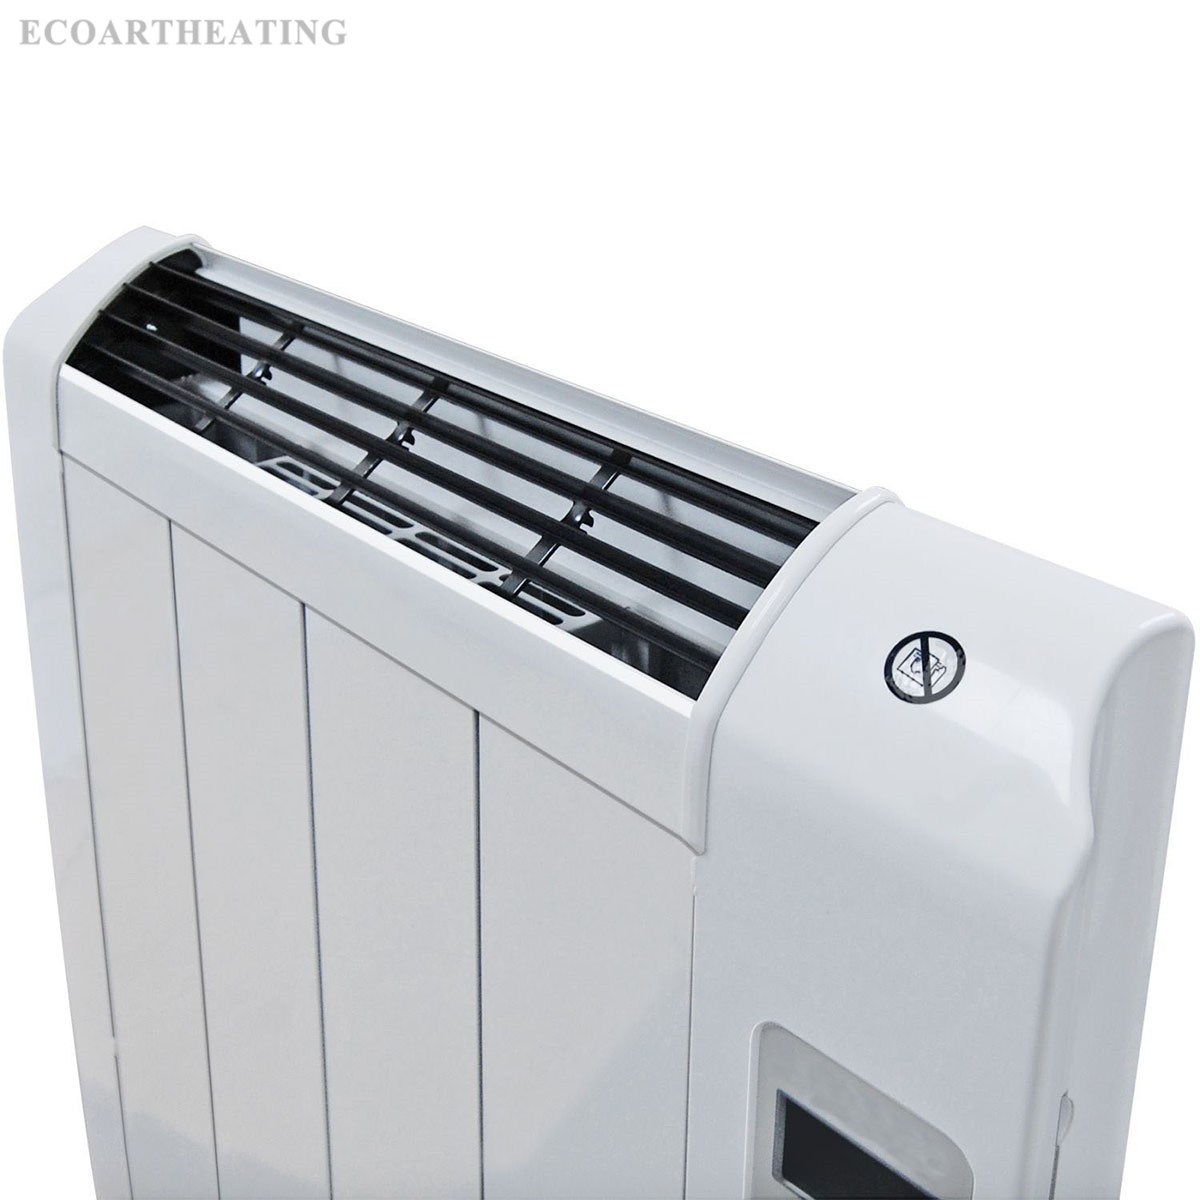 Electric Bathroom Heaters >> 1200W Portable Slim Electric Panel Heater | EcoArt-Heating Community|Infrared Heating